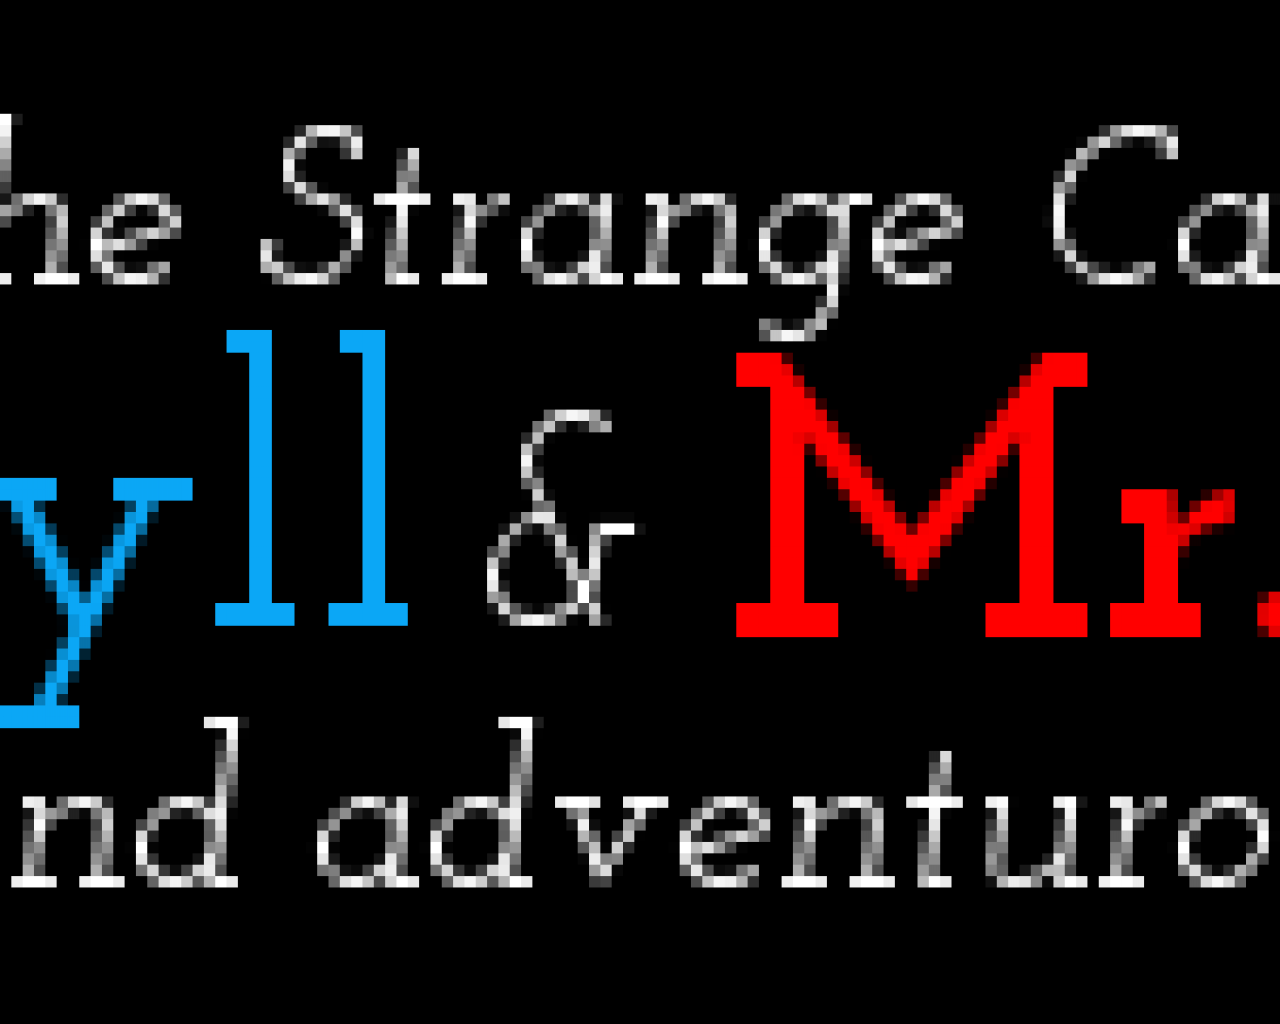 Preview Image 1 for MK's The Strange Case of Dr. Jekyll and Mr. Hyde